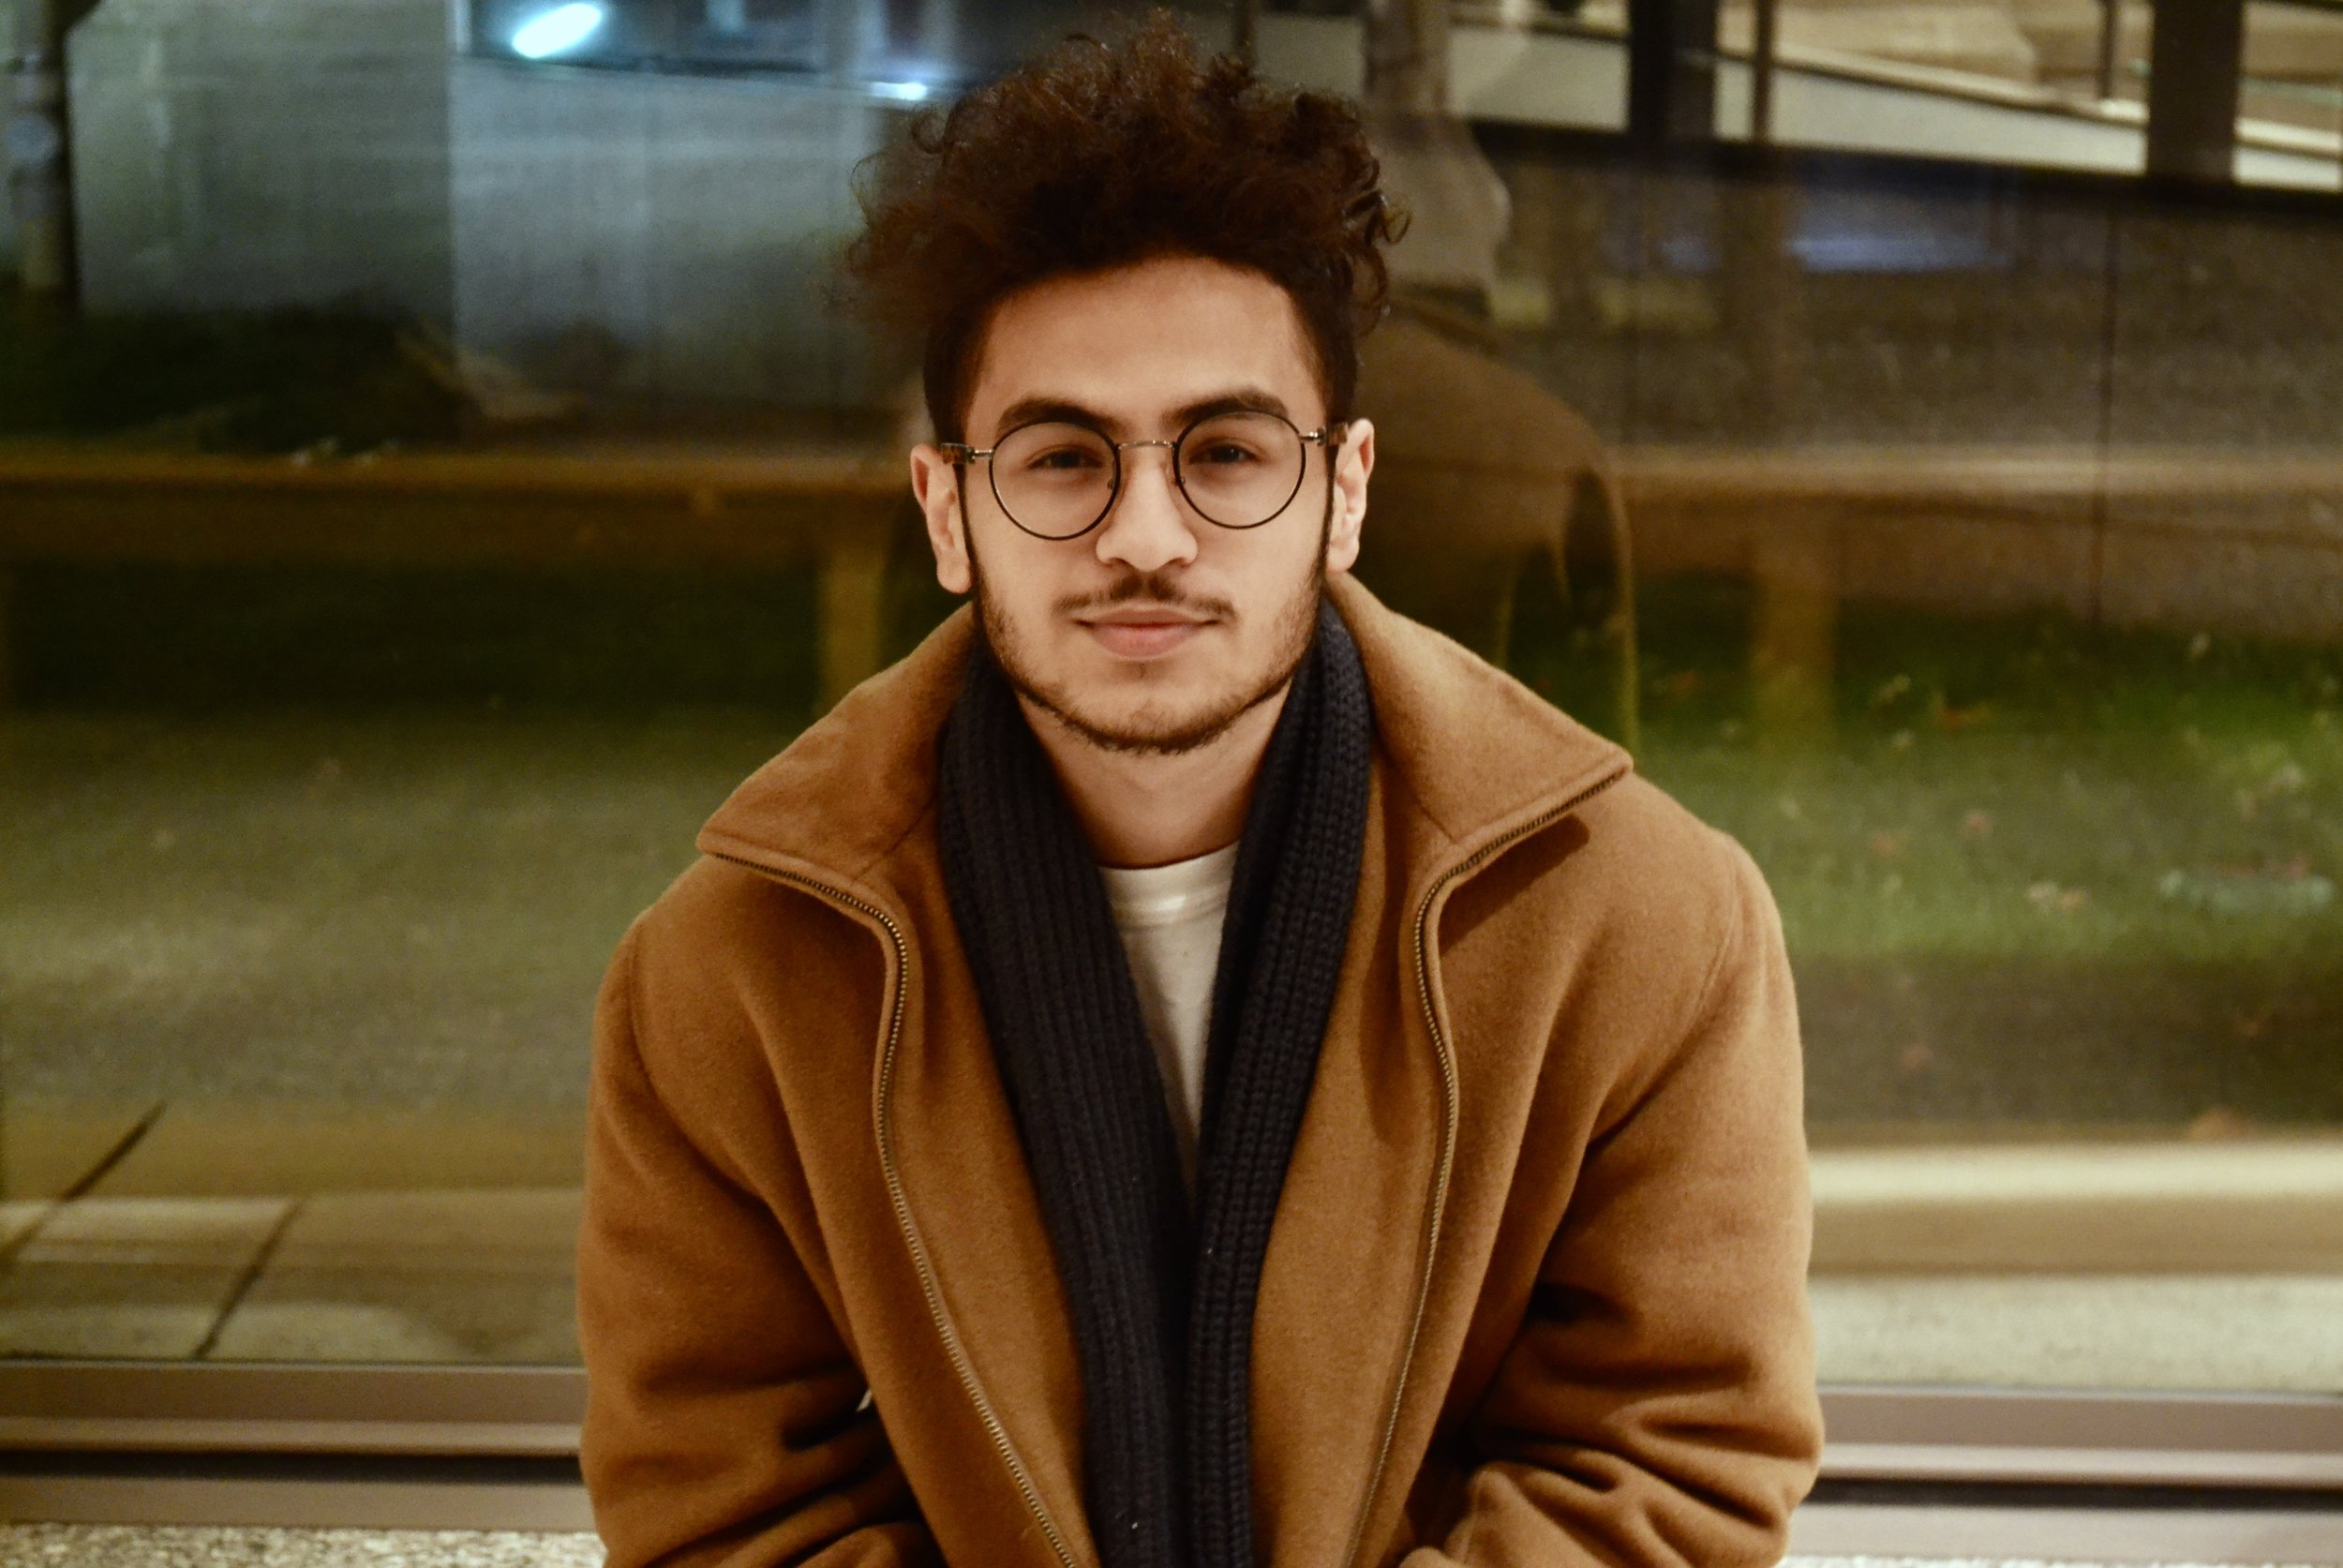 PROJECT #FINDNEWFRIENDS: AHMED BADR